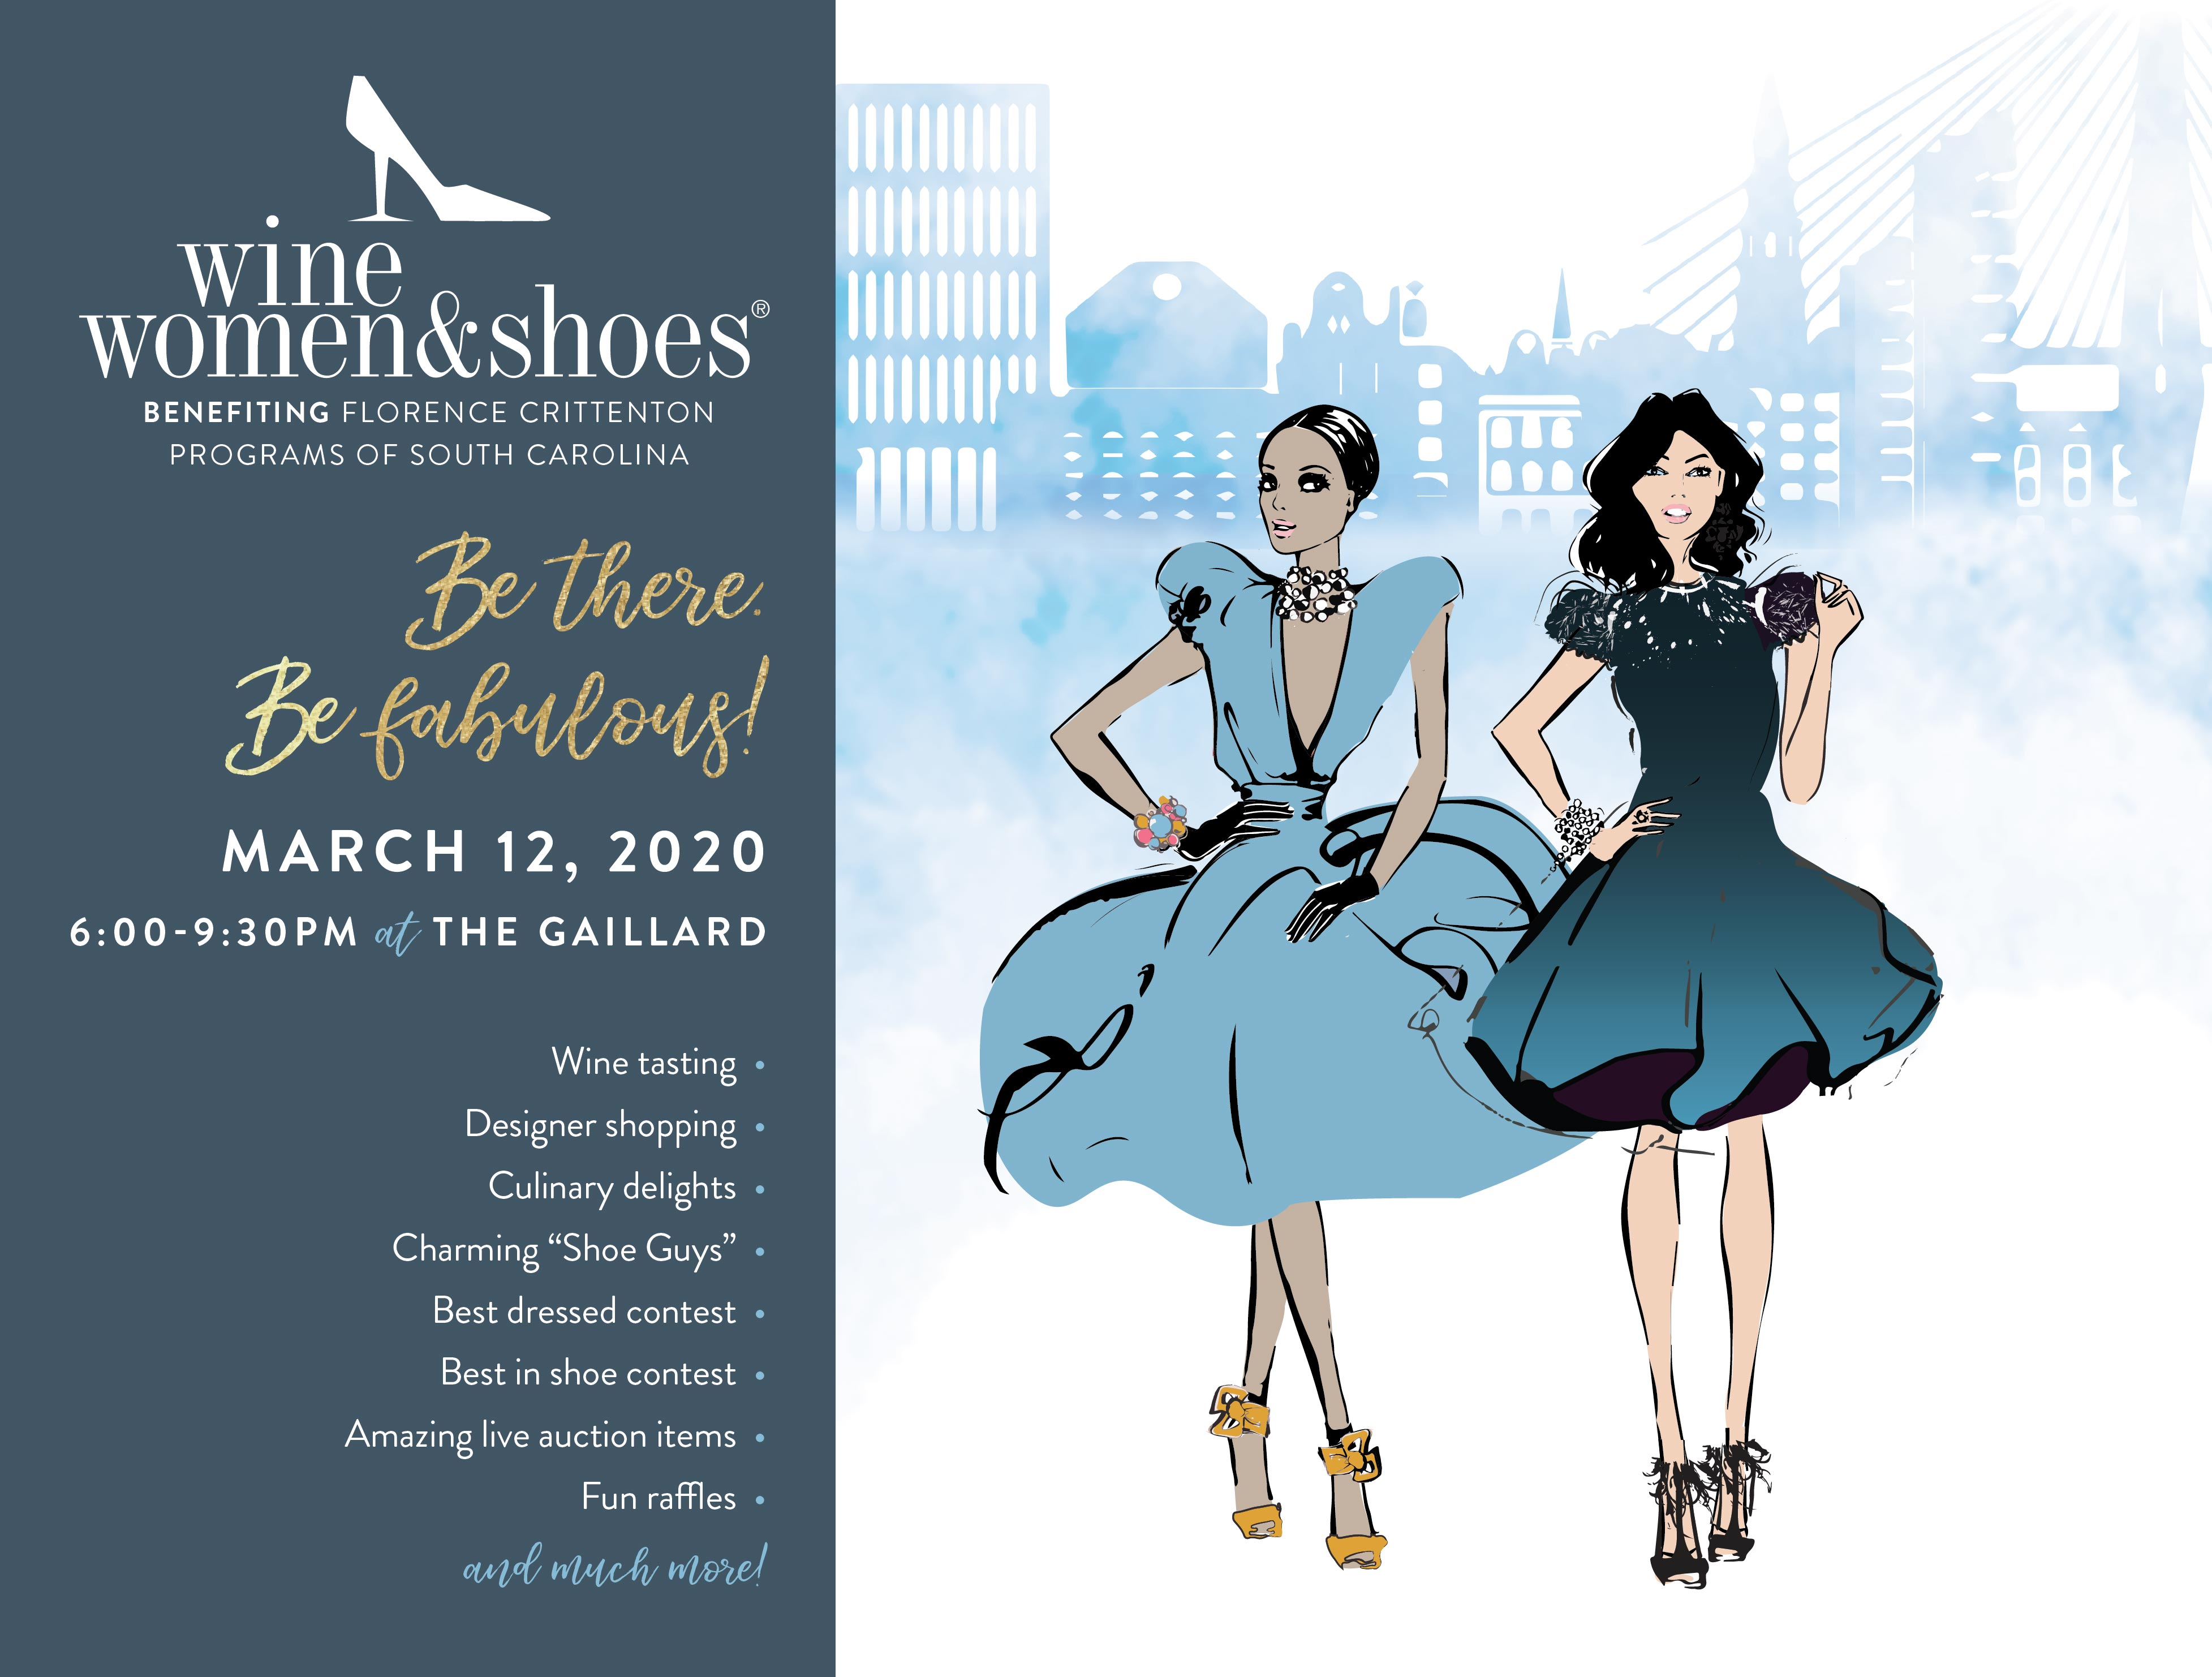 Best Sales Pages 2020 Charleston, SC 2020   Wine Women & Shoes